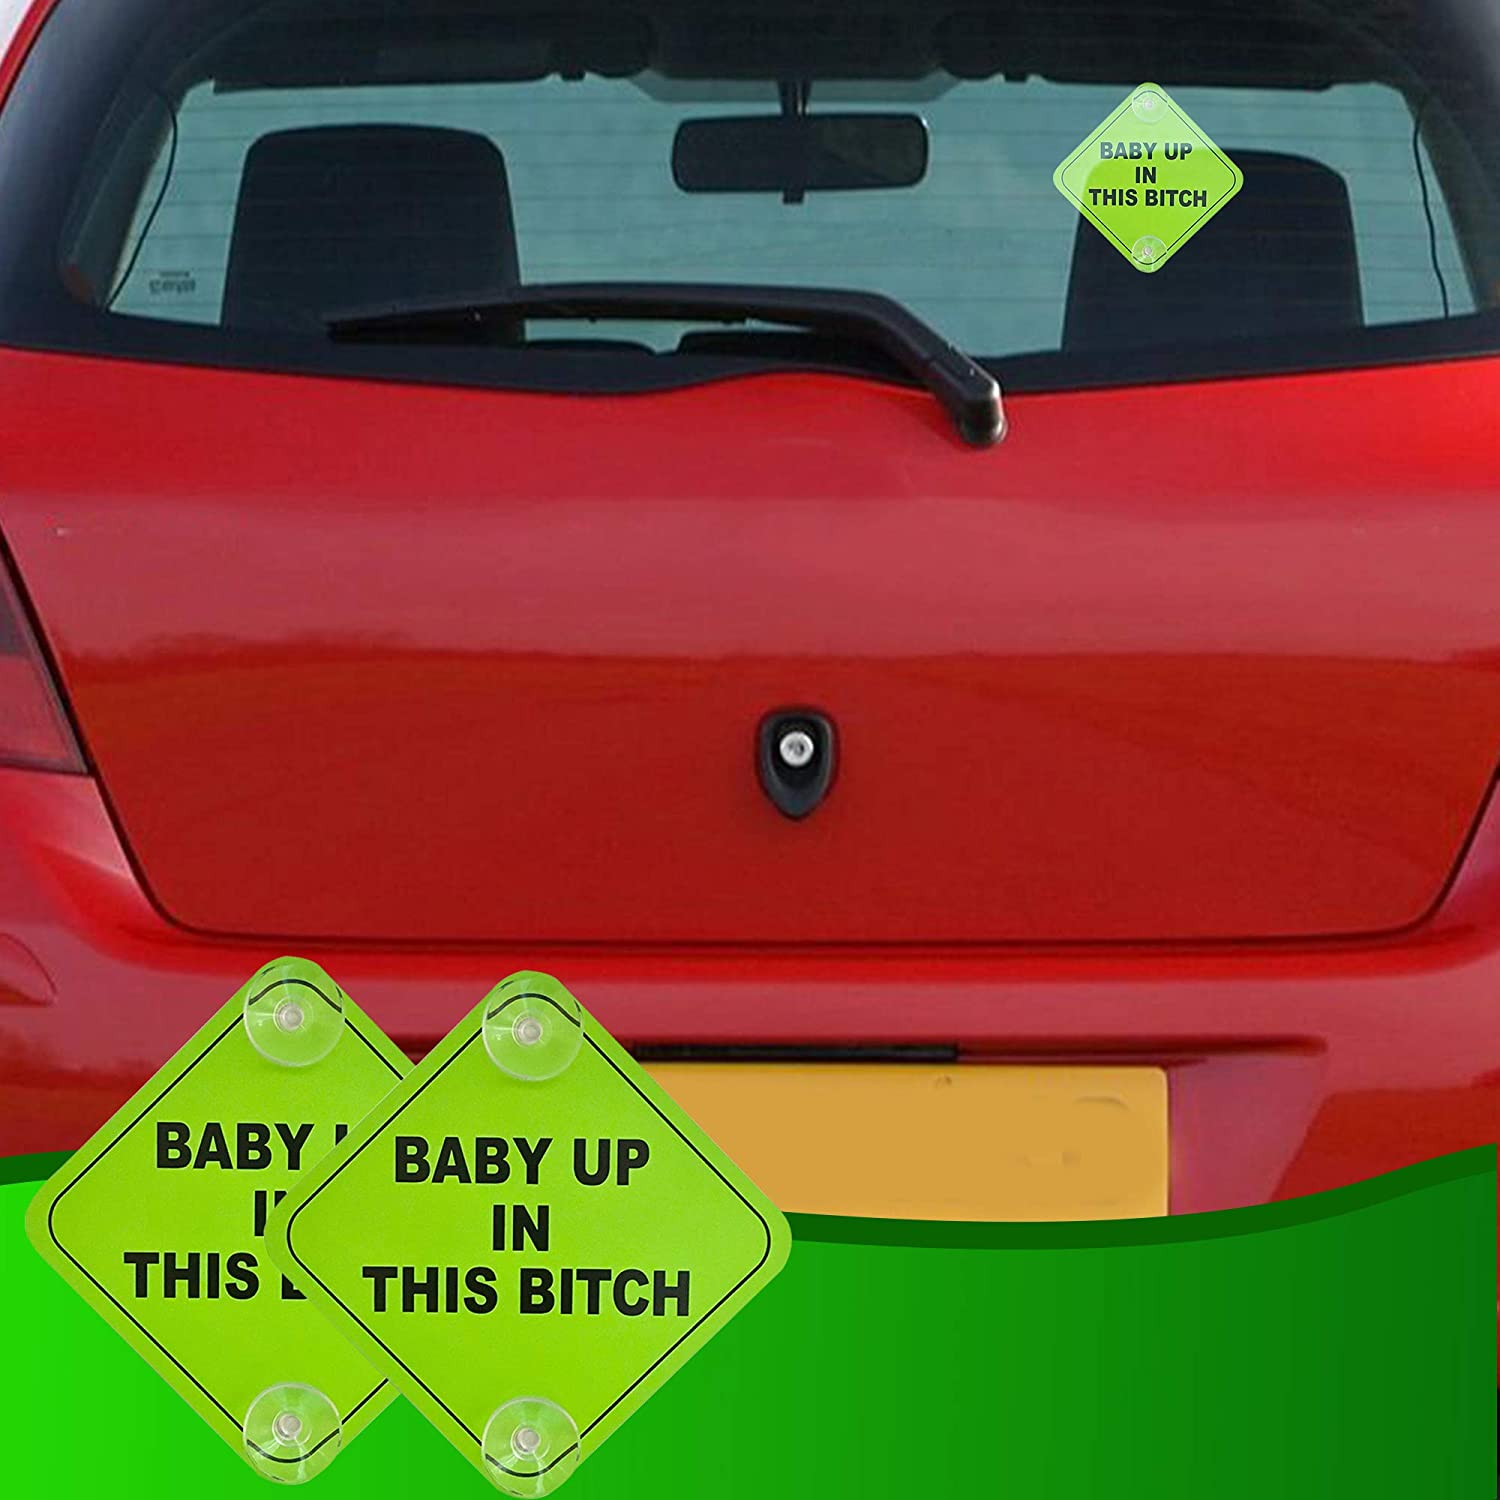 Baby Up in This B Car Window Signs 5x5 Inch Noticeable Bright Neon Green Signs with 2 Suction Cups for Extra Strong Hold LJK Safety 10PL65410-99516 Aluminum 2 Pack